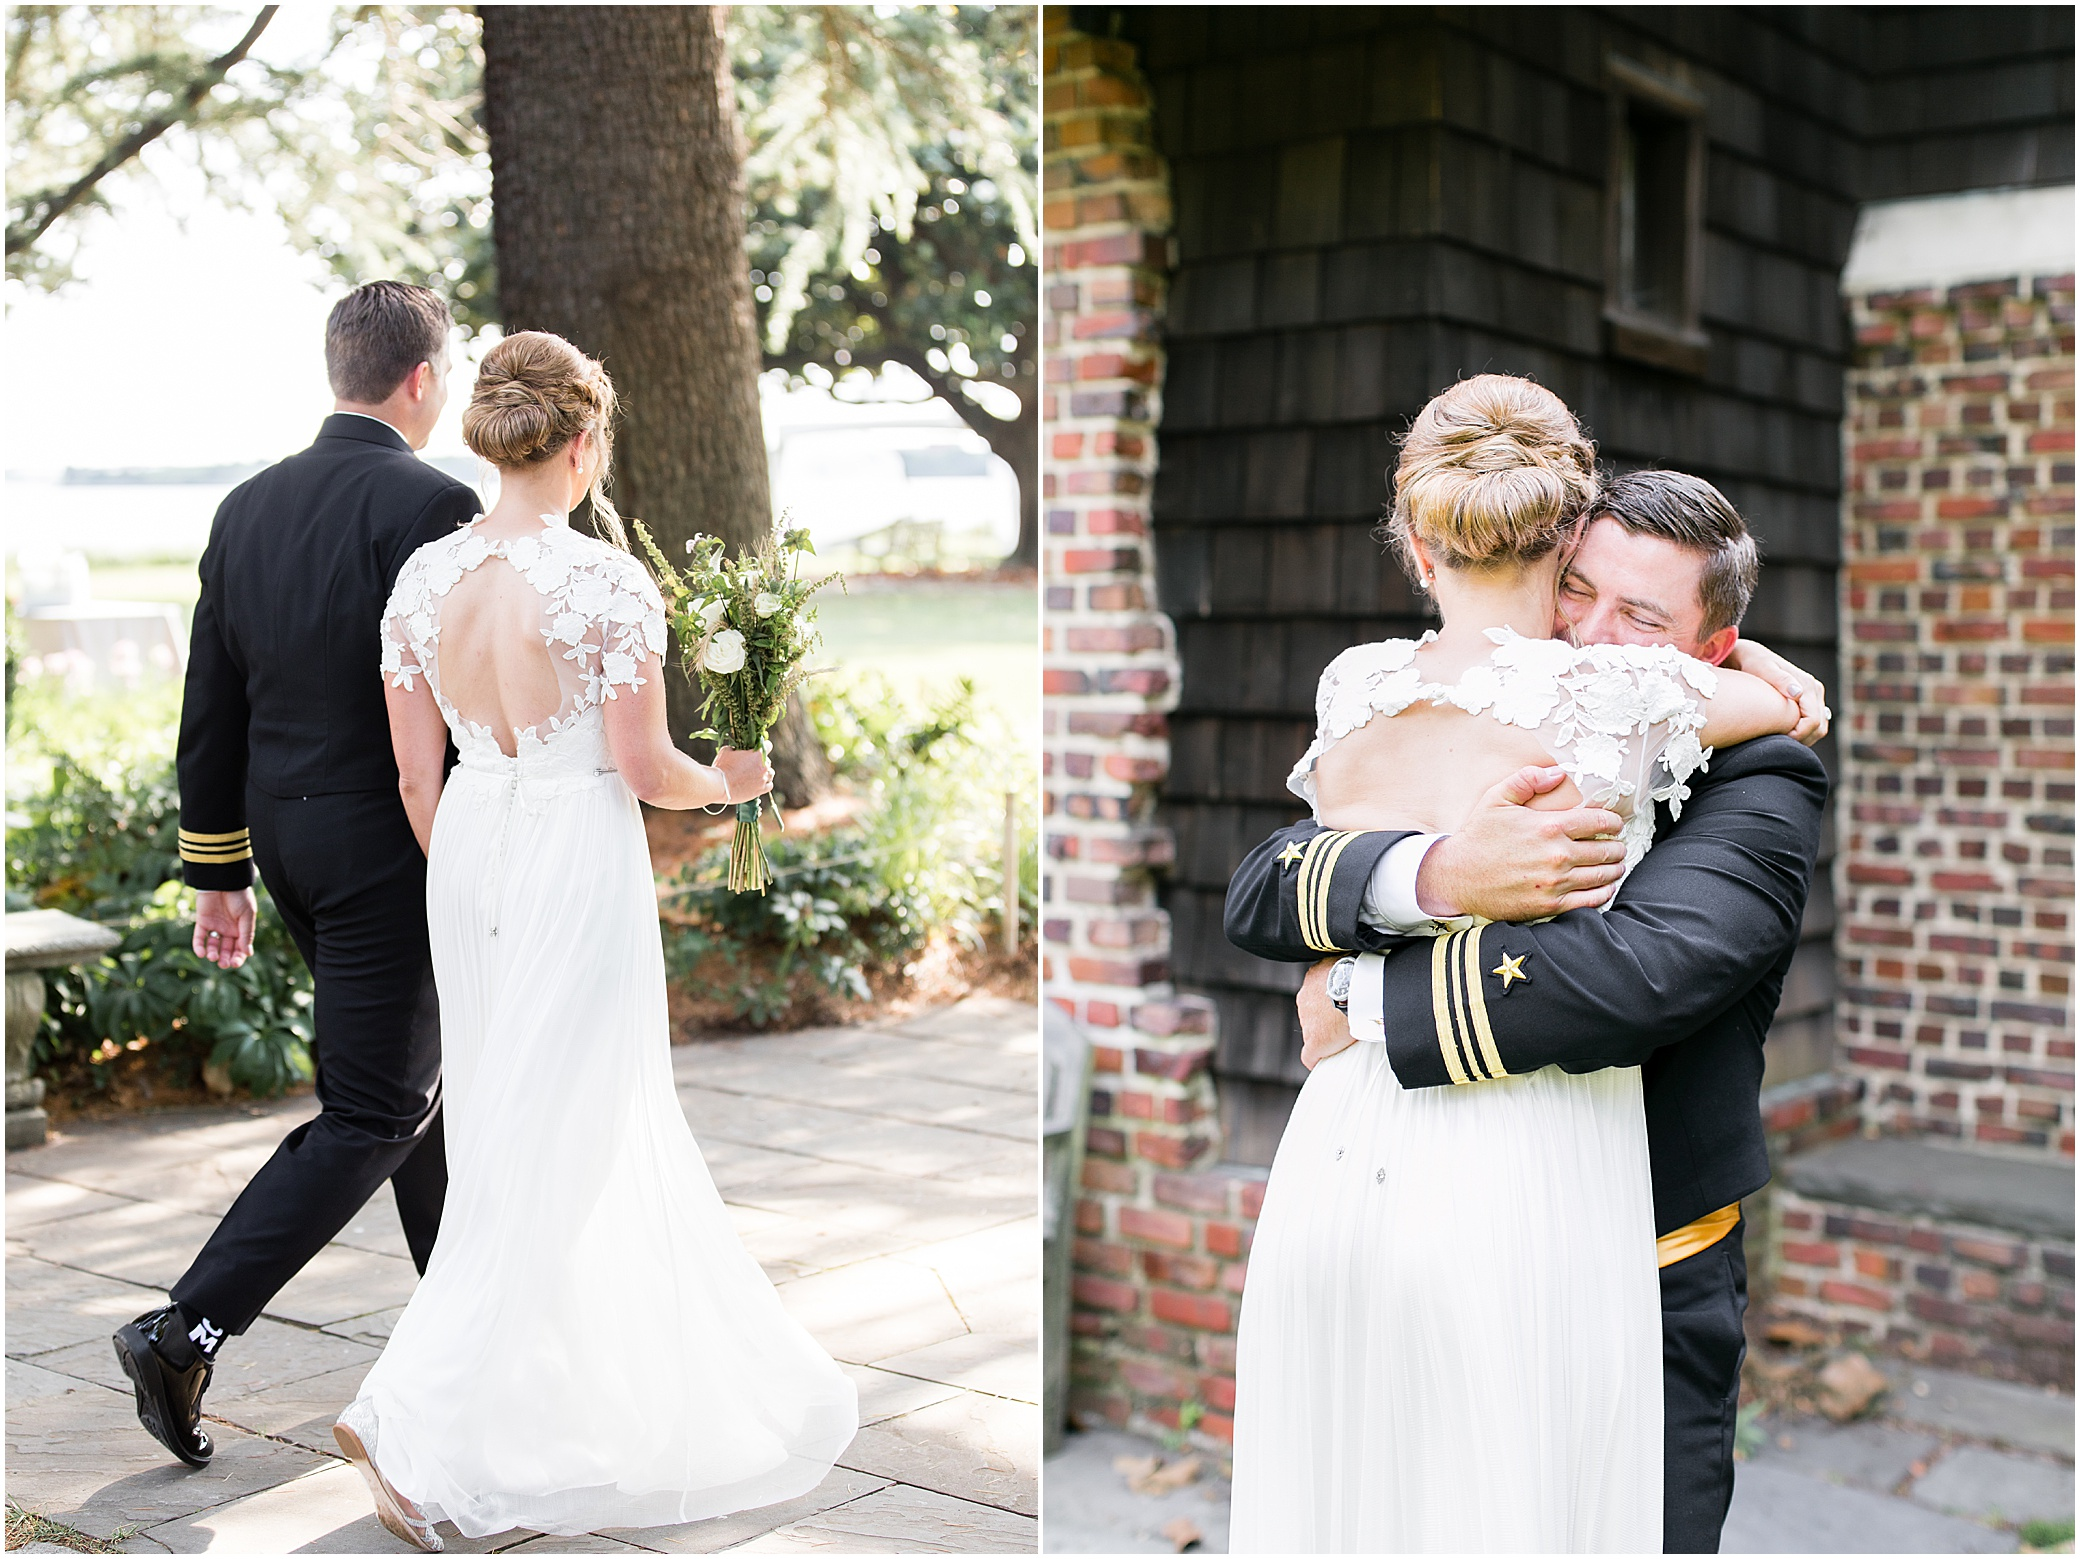 the hermitage museum and gardens wedding, hermitage museum and gardens wedding, norfolk wedding photography, virginia wedding photography, jessica ryan photography, jessica ryan photographer, hermitage museum and gardens wedding photography, bhldn wedding dress,